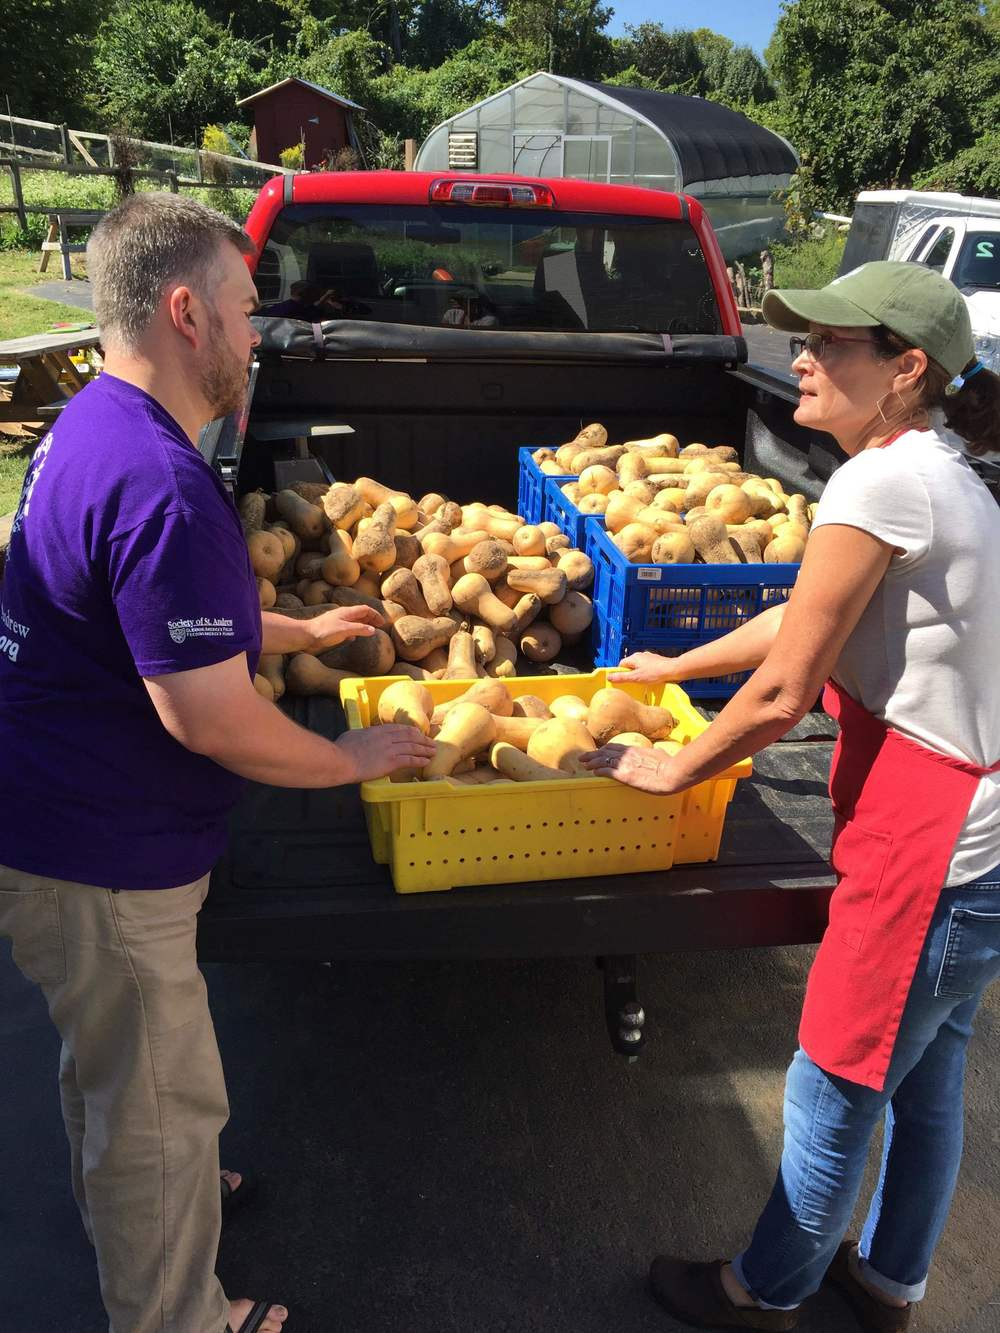 The Society of St. Andrew, a ministry that salvages food from local farms, makes a delivery of butternut squash to TNFP.